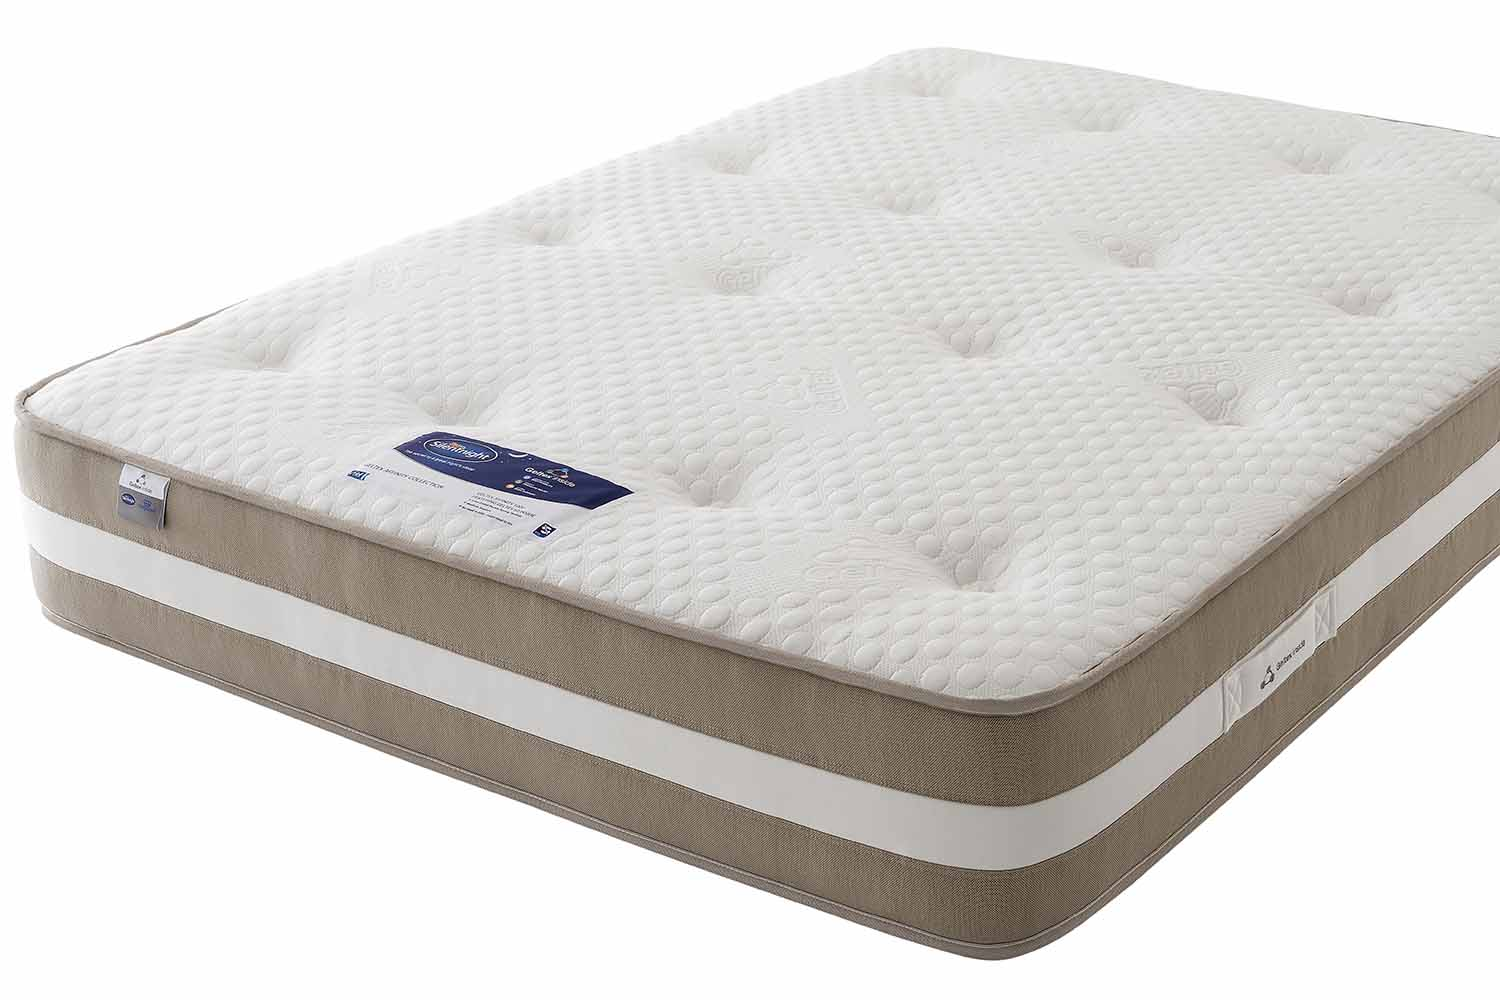 double beds mattress comforter dp comfort kitchen select amazon co essentials spring uk pocket silentnight home